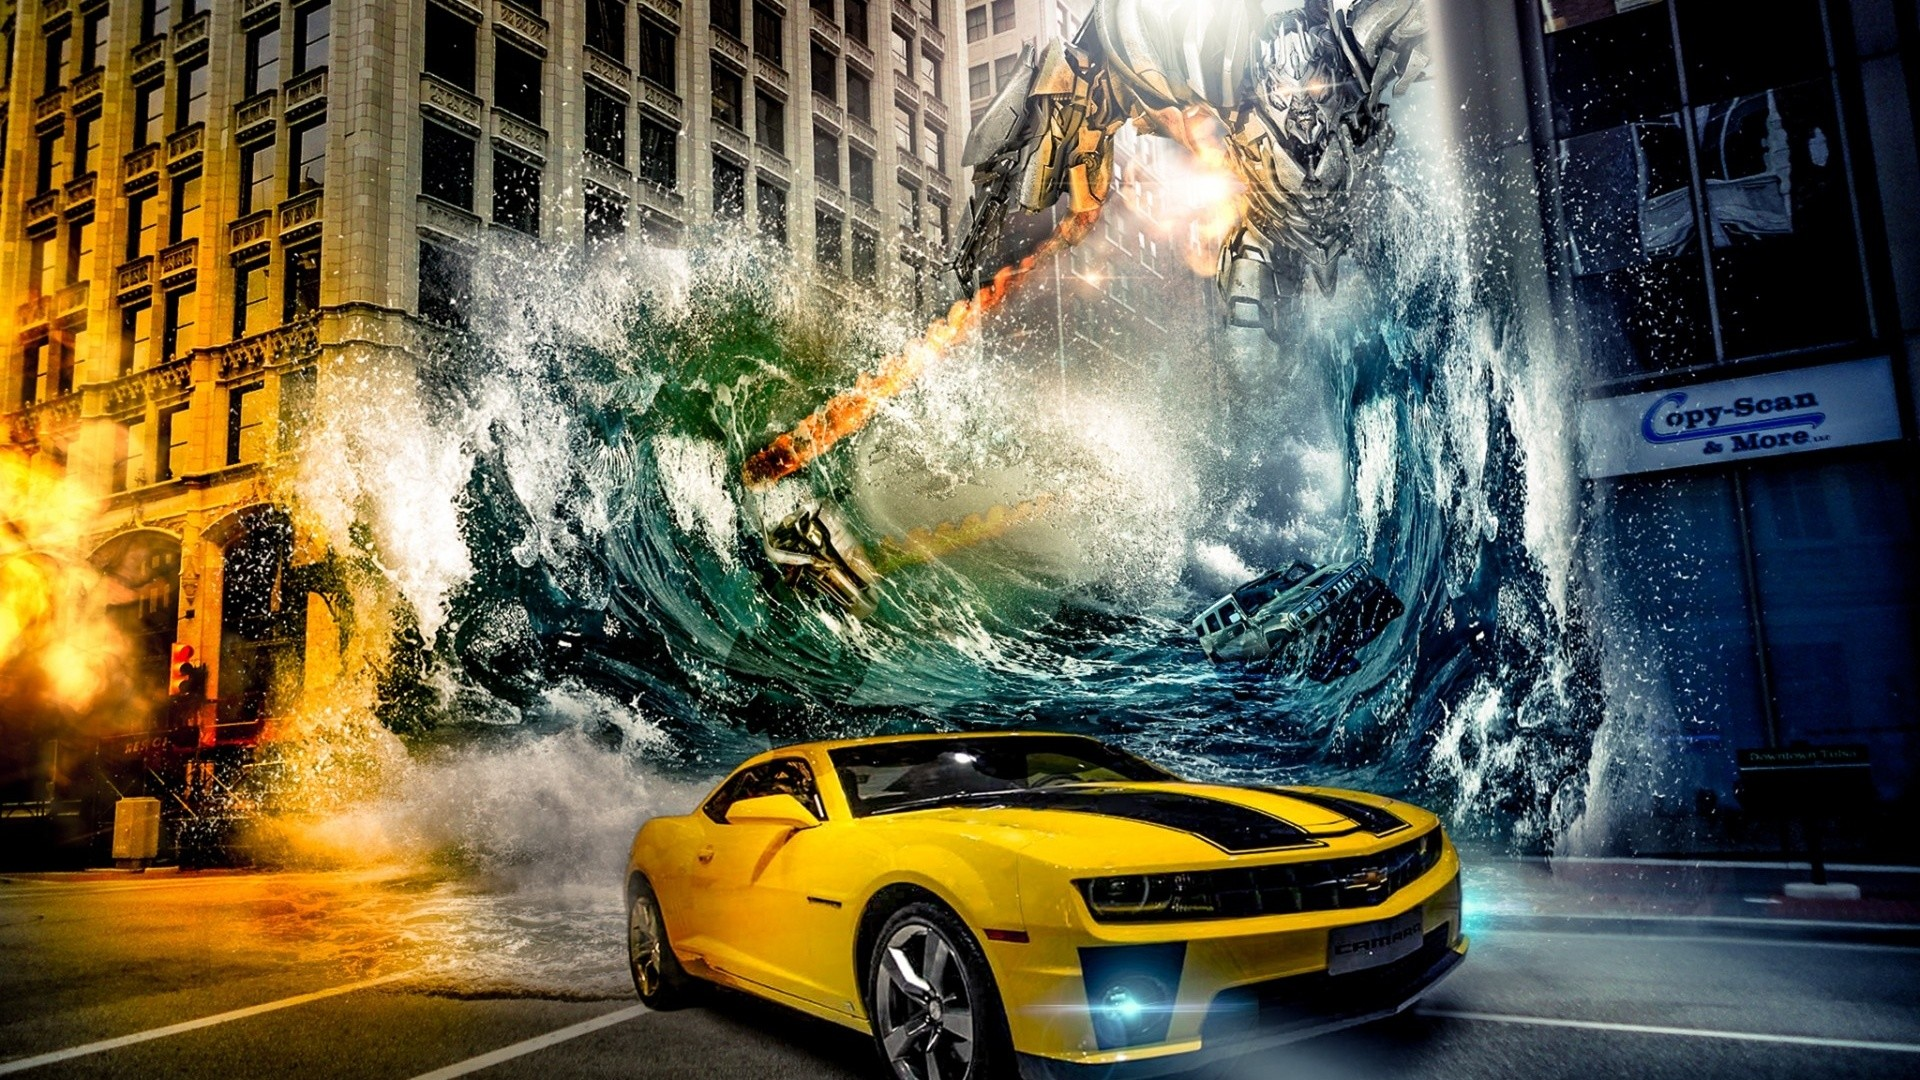 transformers 4 hd images